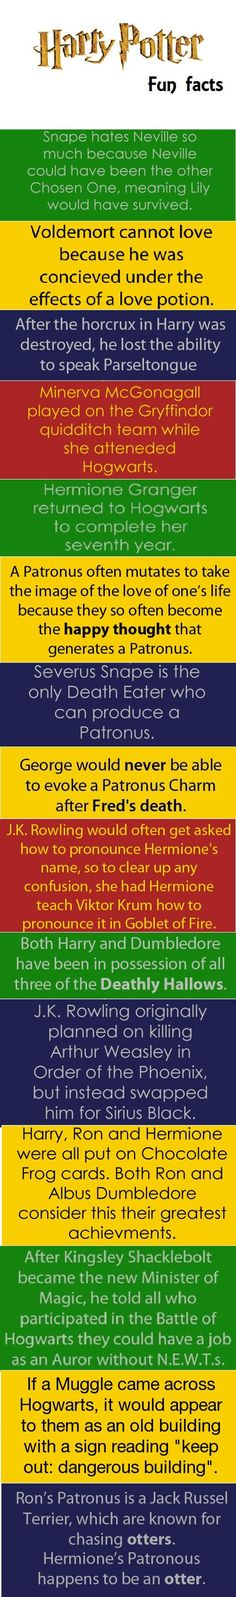 Harry Potter Fun Facts- I am SO upset about the Sirius Black one! If he wouldn't have died, my life would be so much less complicated